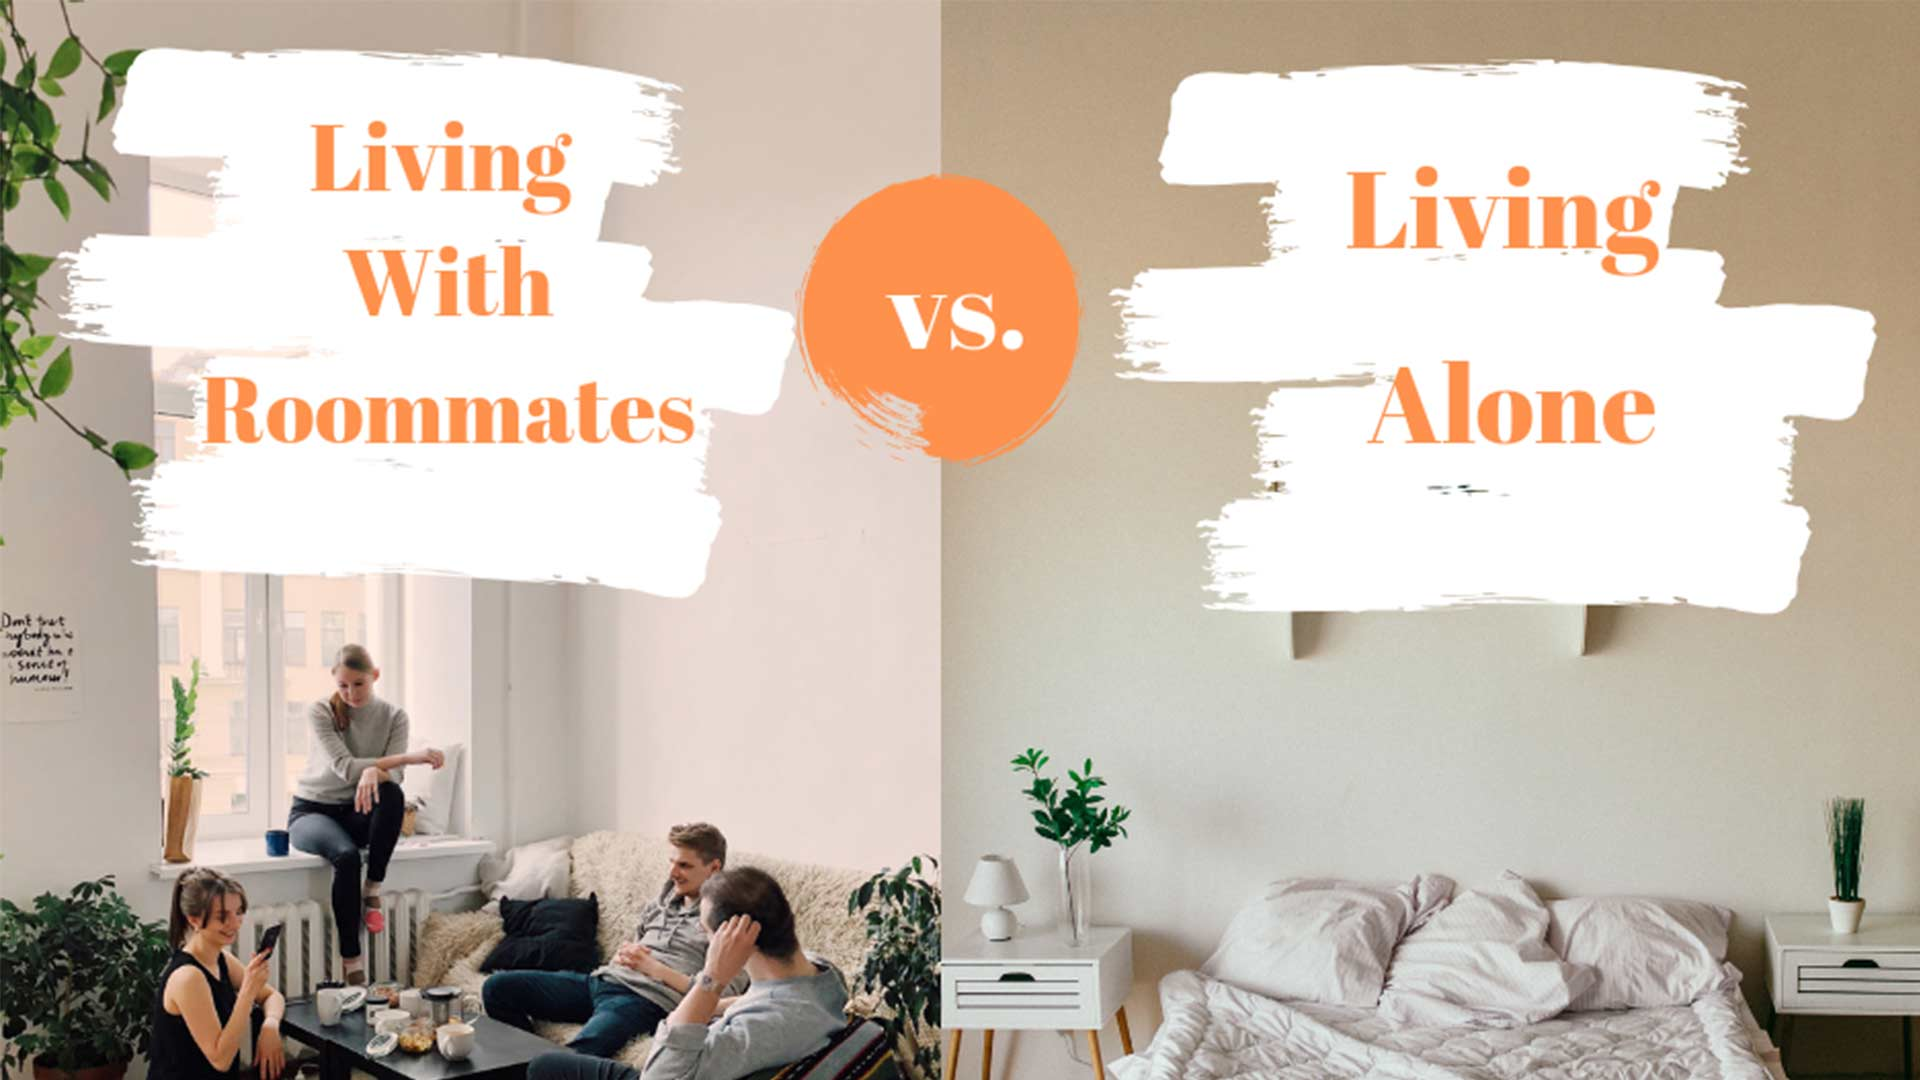 Living Alone vs. Living With Roommates